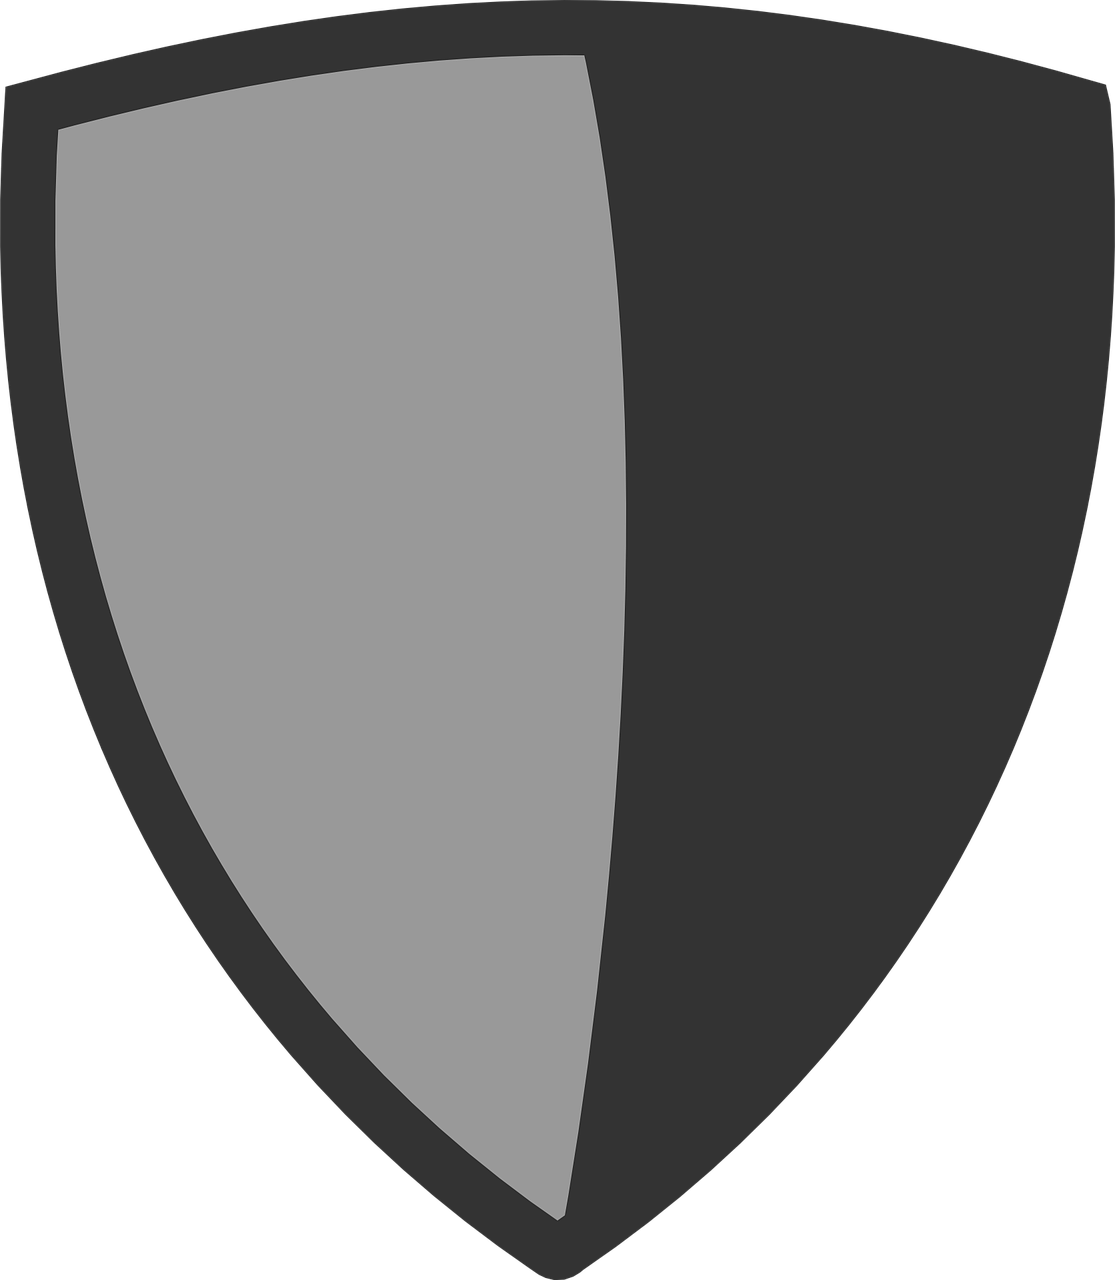 Icon of a shield